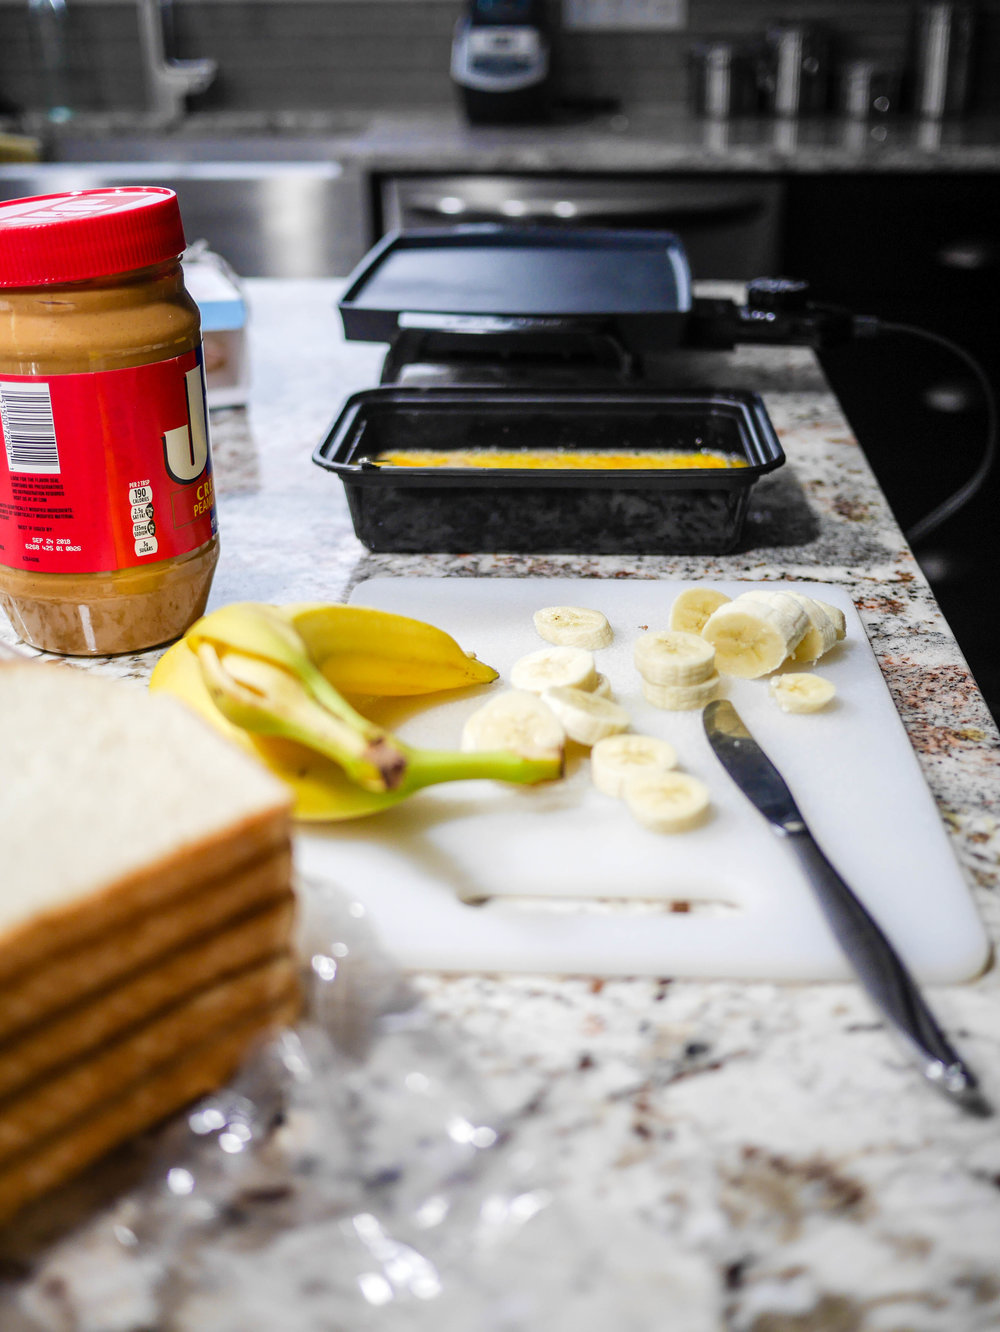 As with any french toast breakfast, you're going to want to get your assembly line in order before you heat up your griddle.